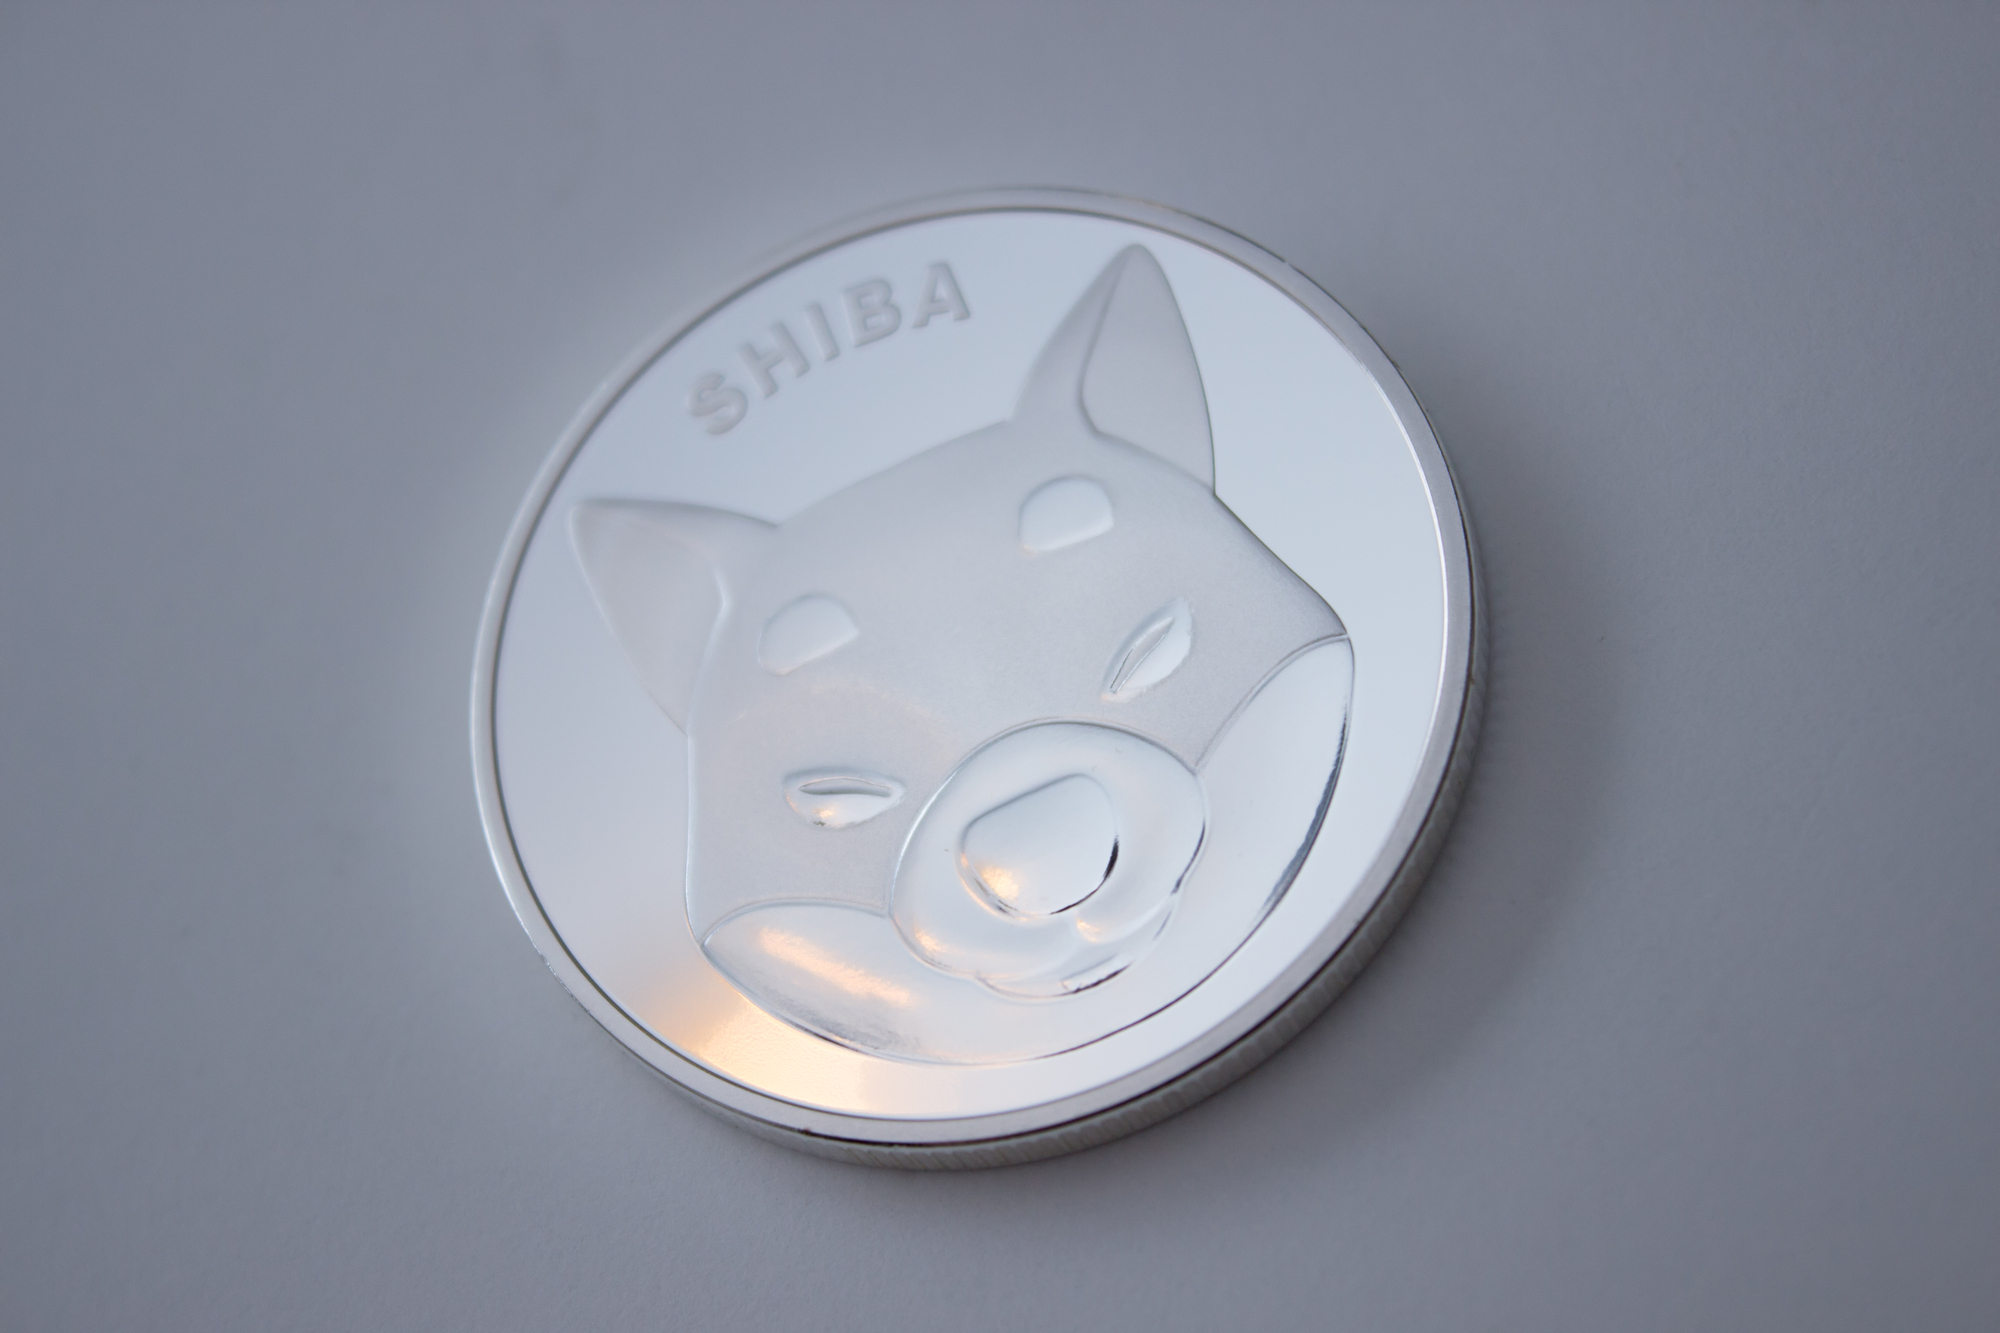 Shiba Inu Tries To Settle Above $0.000007 As Bitcoin Rebounds